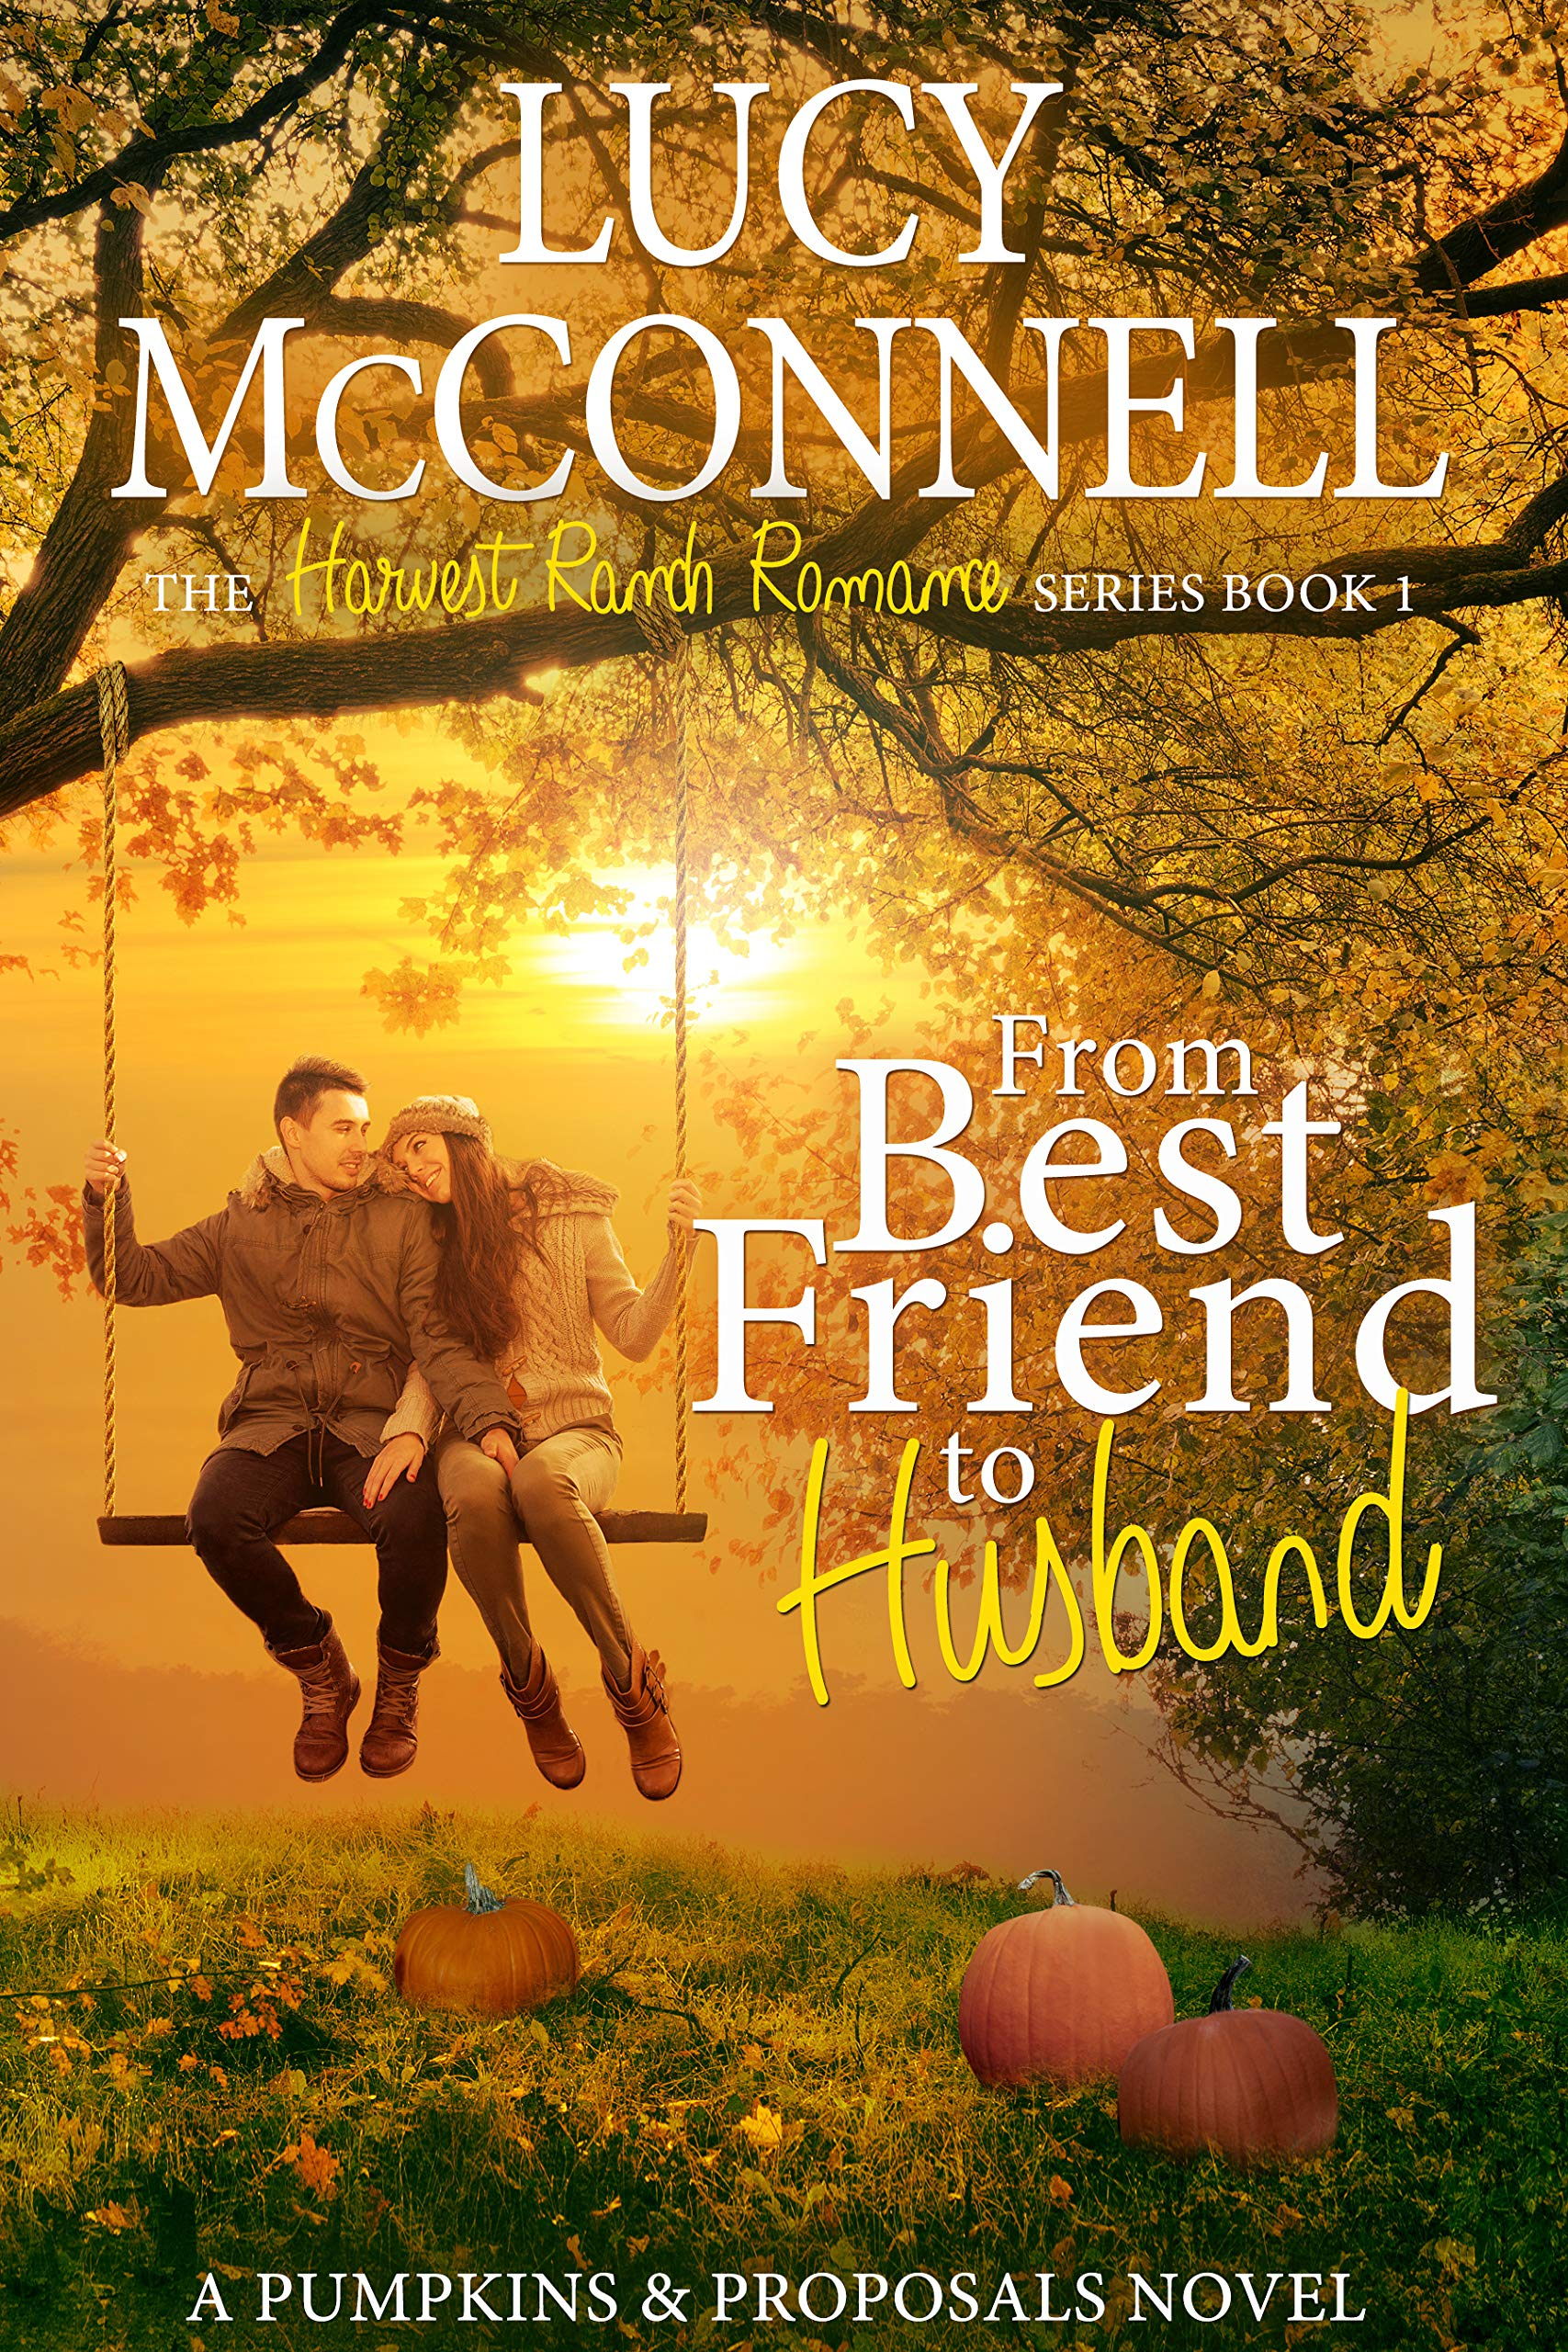 From Best Friend to Husband: A Pumpkins and Proposals Novel (The Harvest Ranch Romance Series Book 1)